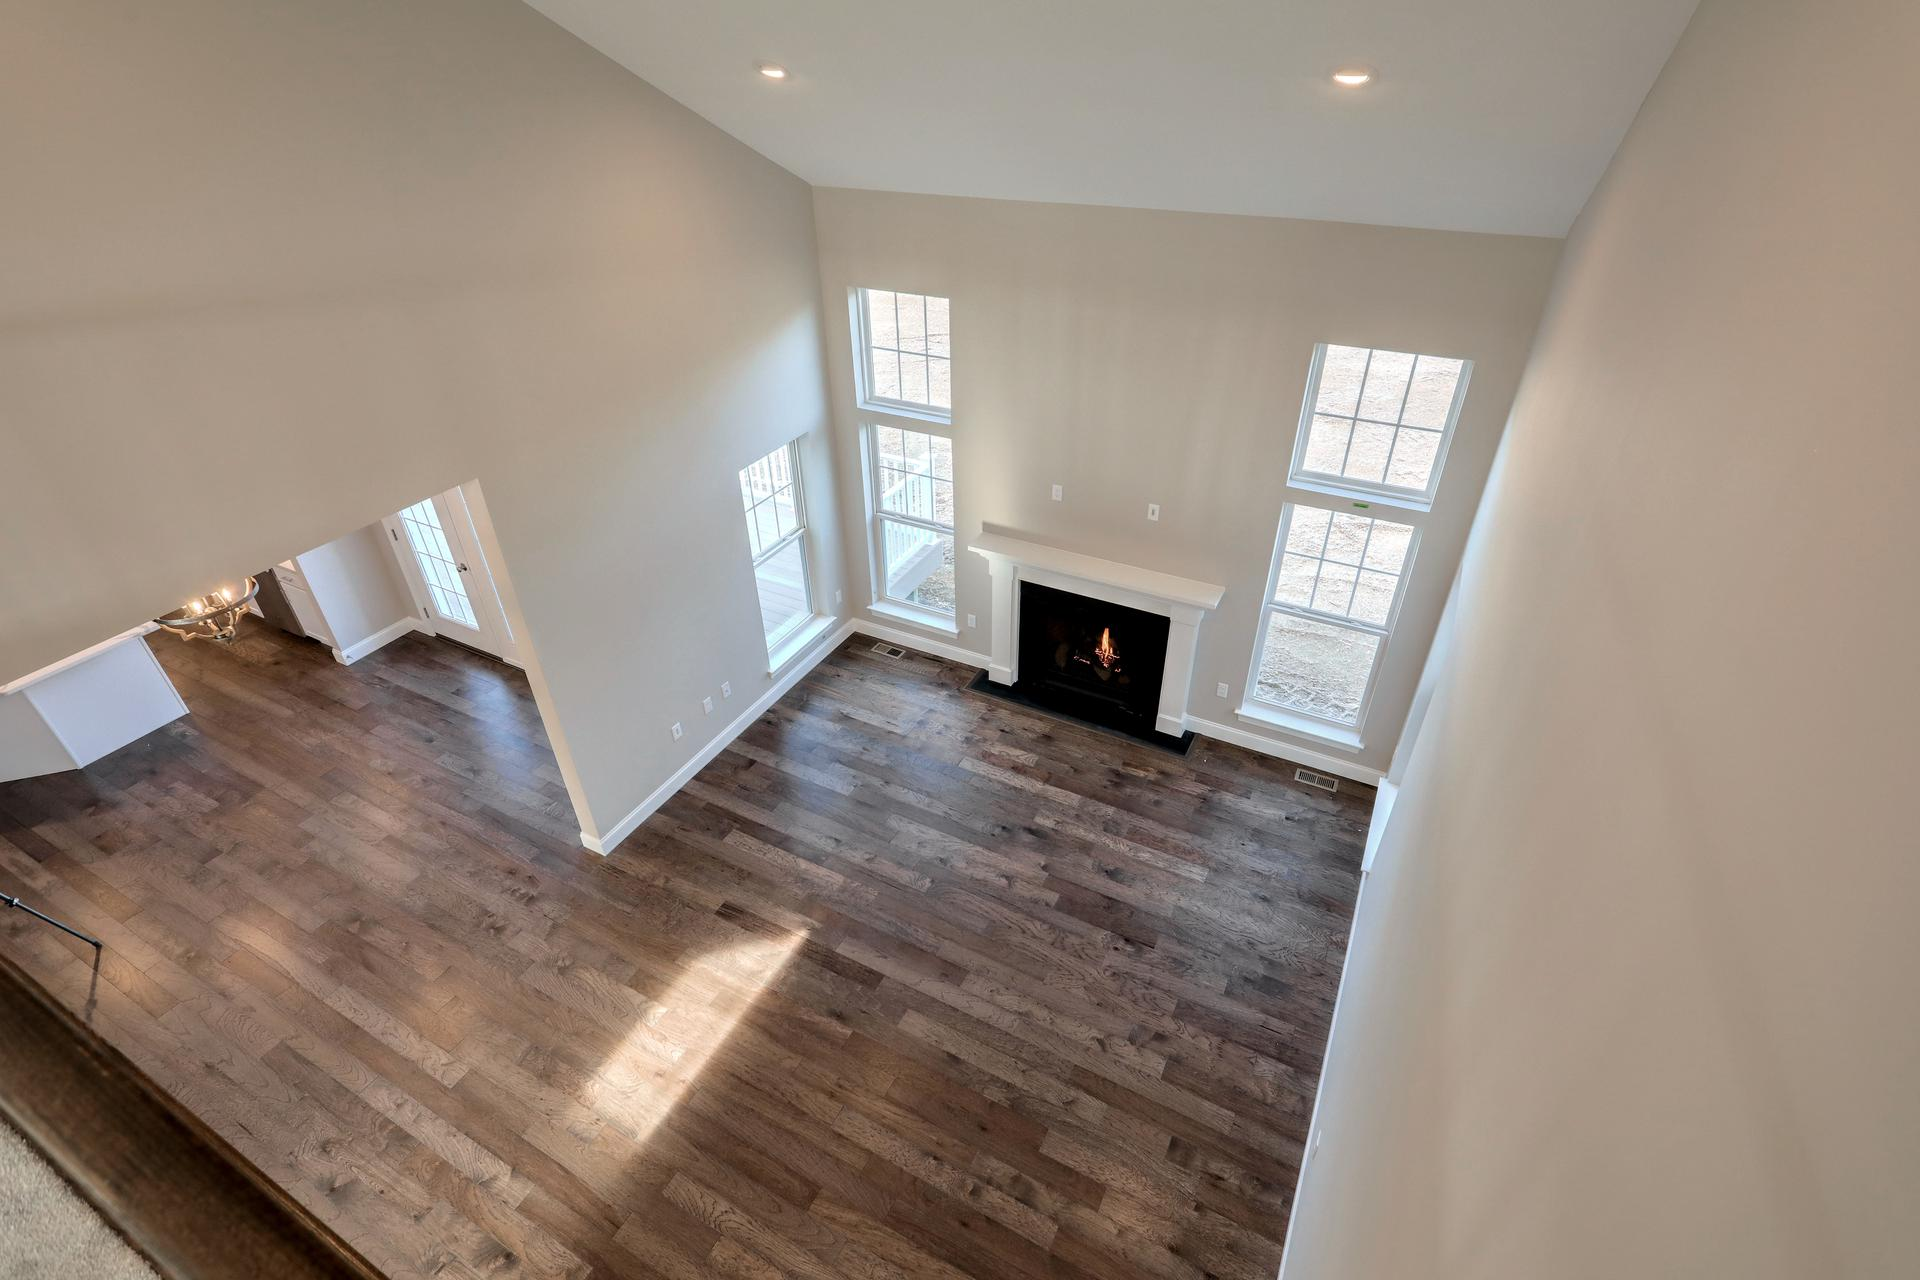 3,512sf New Home in Mohnton, PA